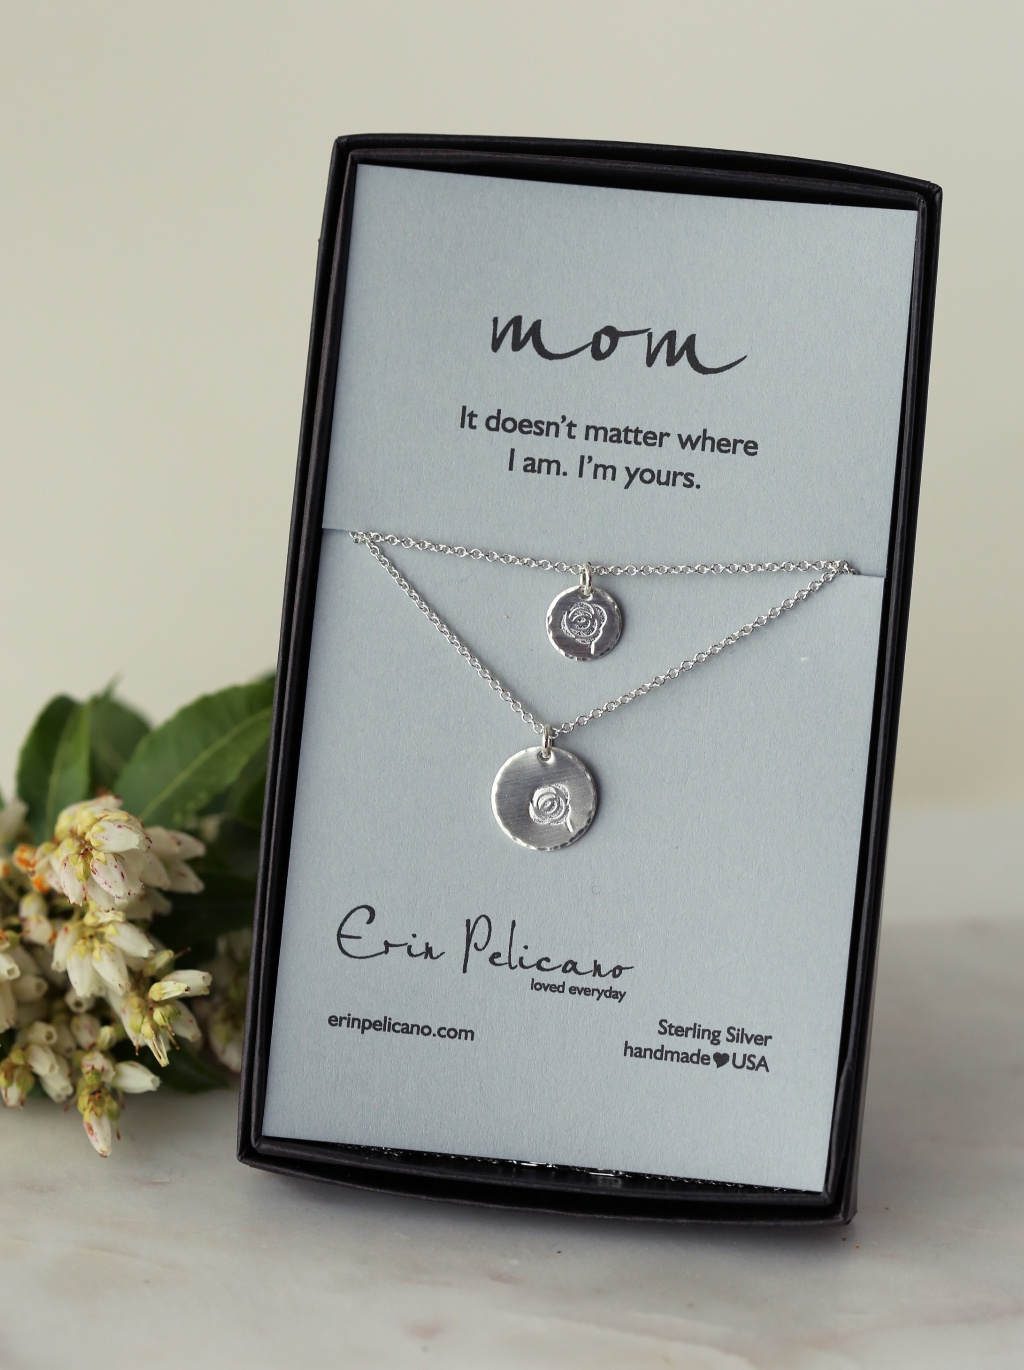 Jewelry gifts for Mother of the Bride! Special meaningful jewelry sets to share love and give gratitude. Explore our best selling